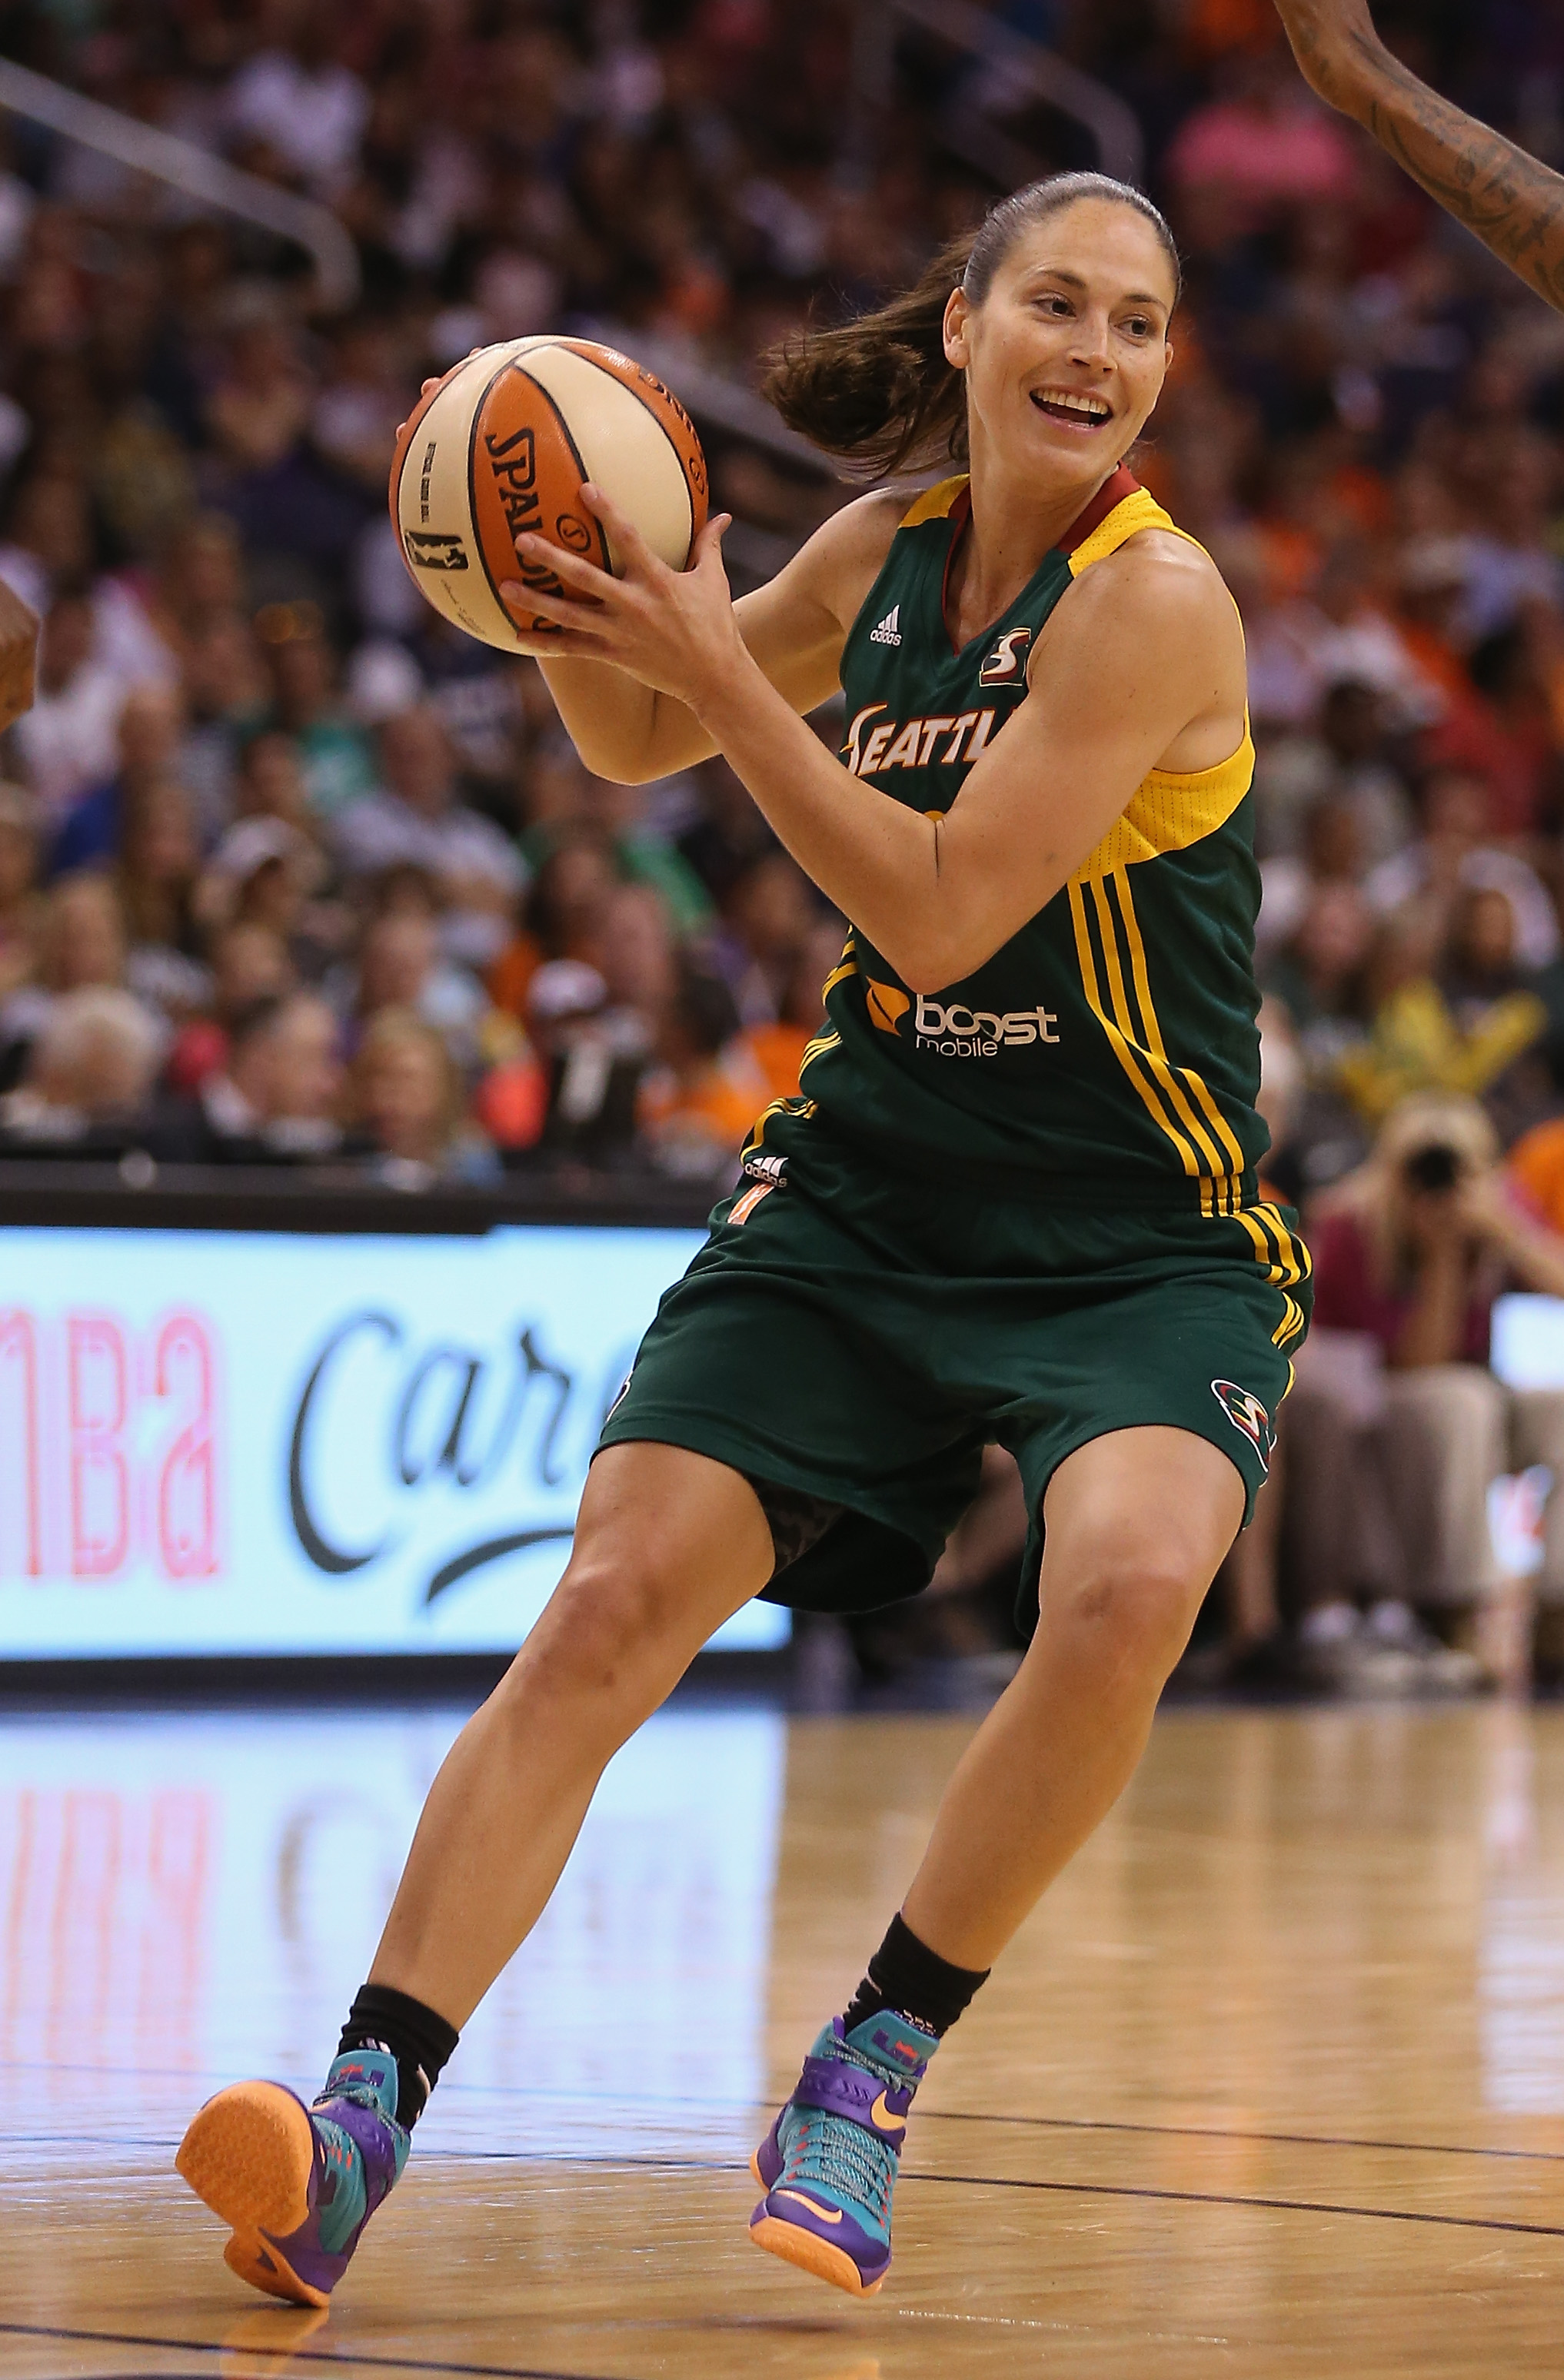 One of the most important questions the Storm must answer over the coming weeks is whether franchise star Sue Bird fits with their long term goal of being a perennial championship contender once again.